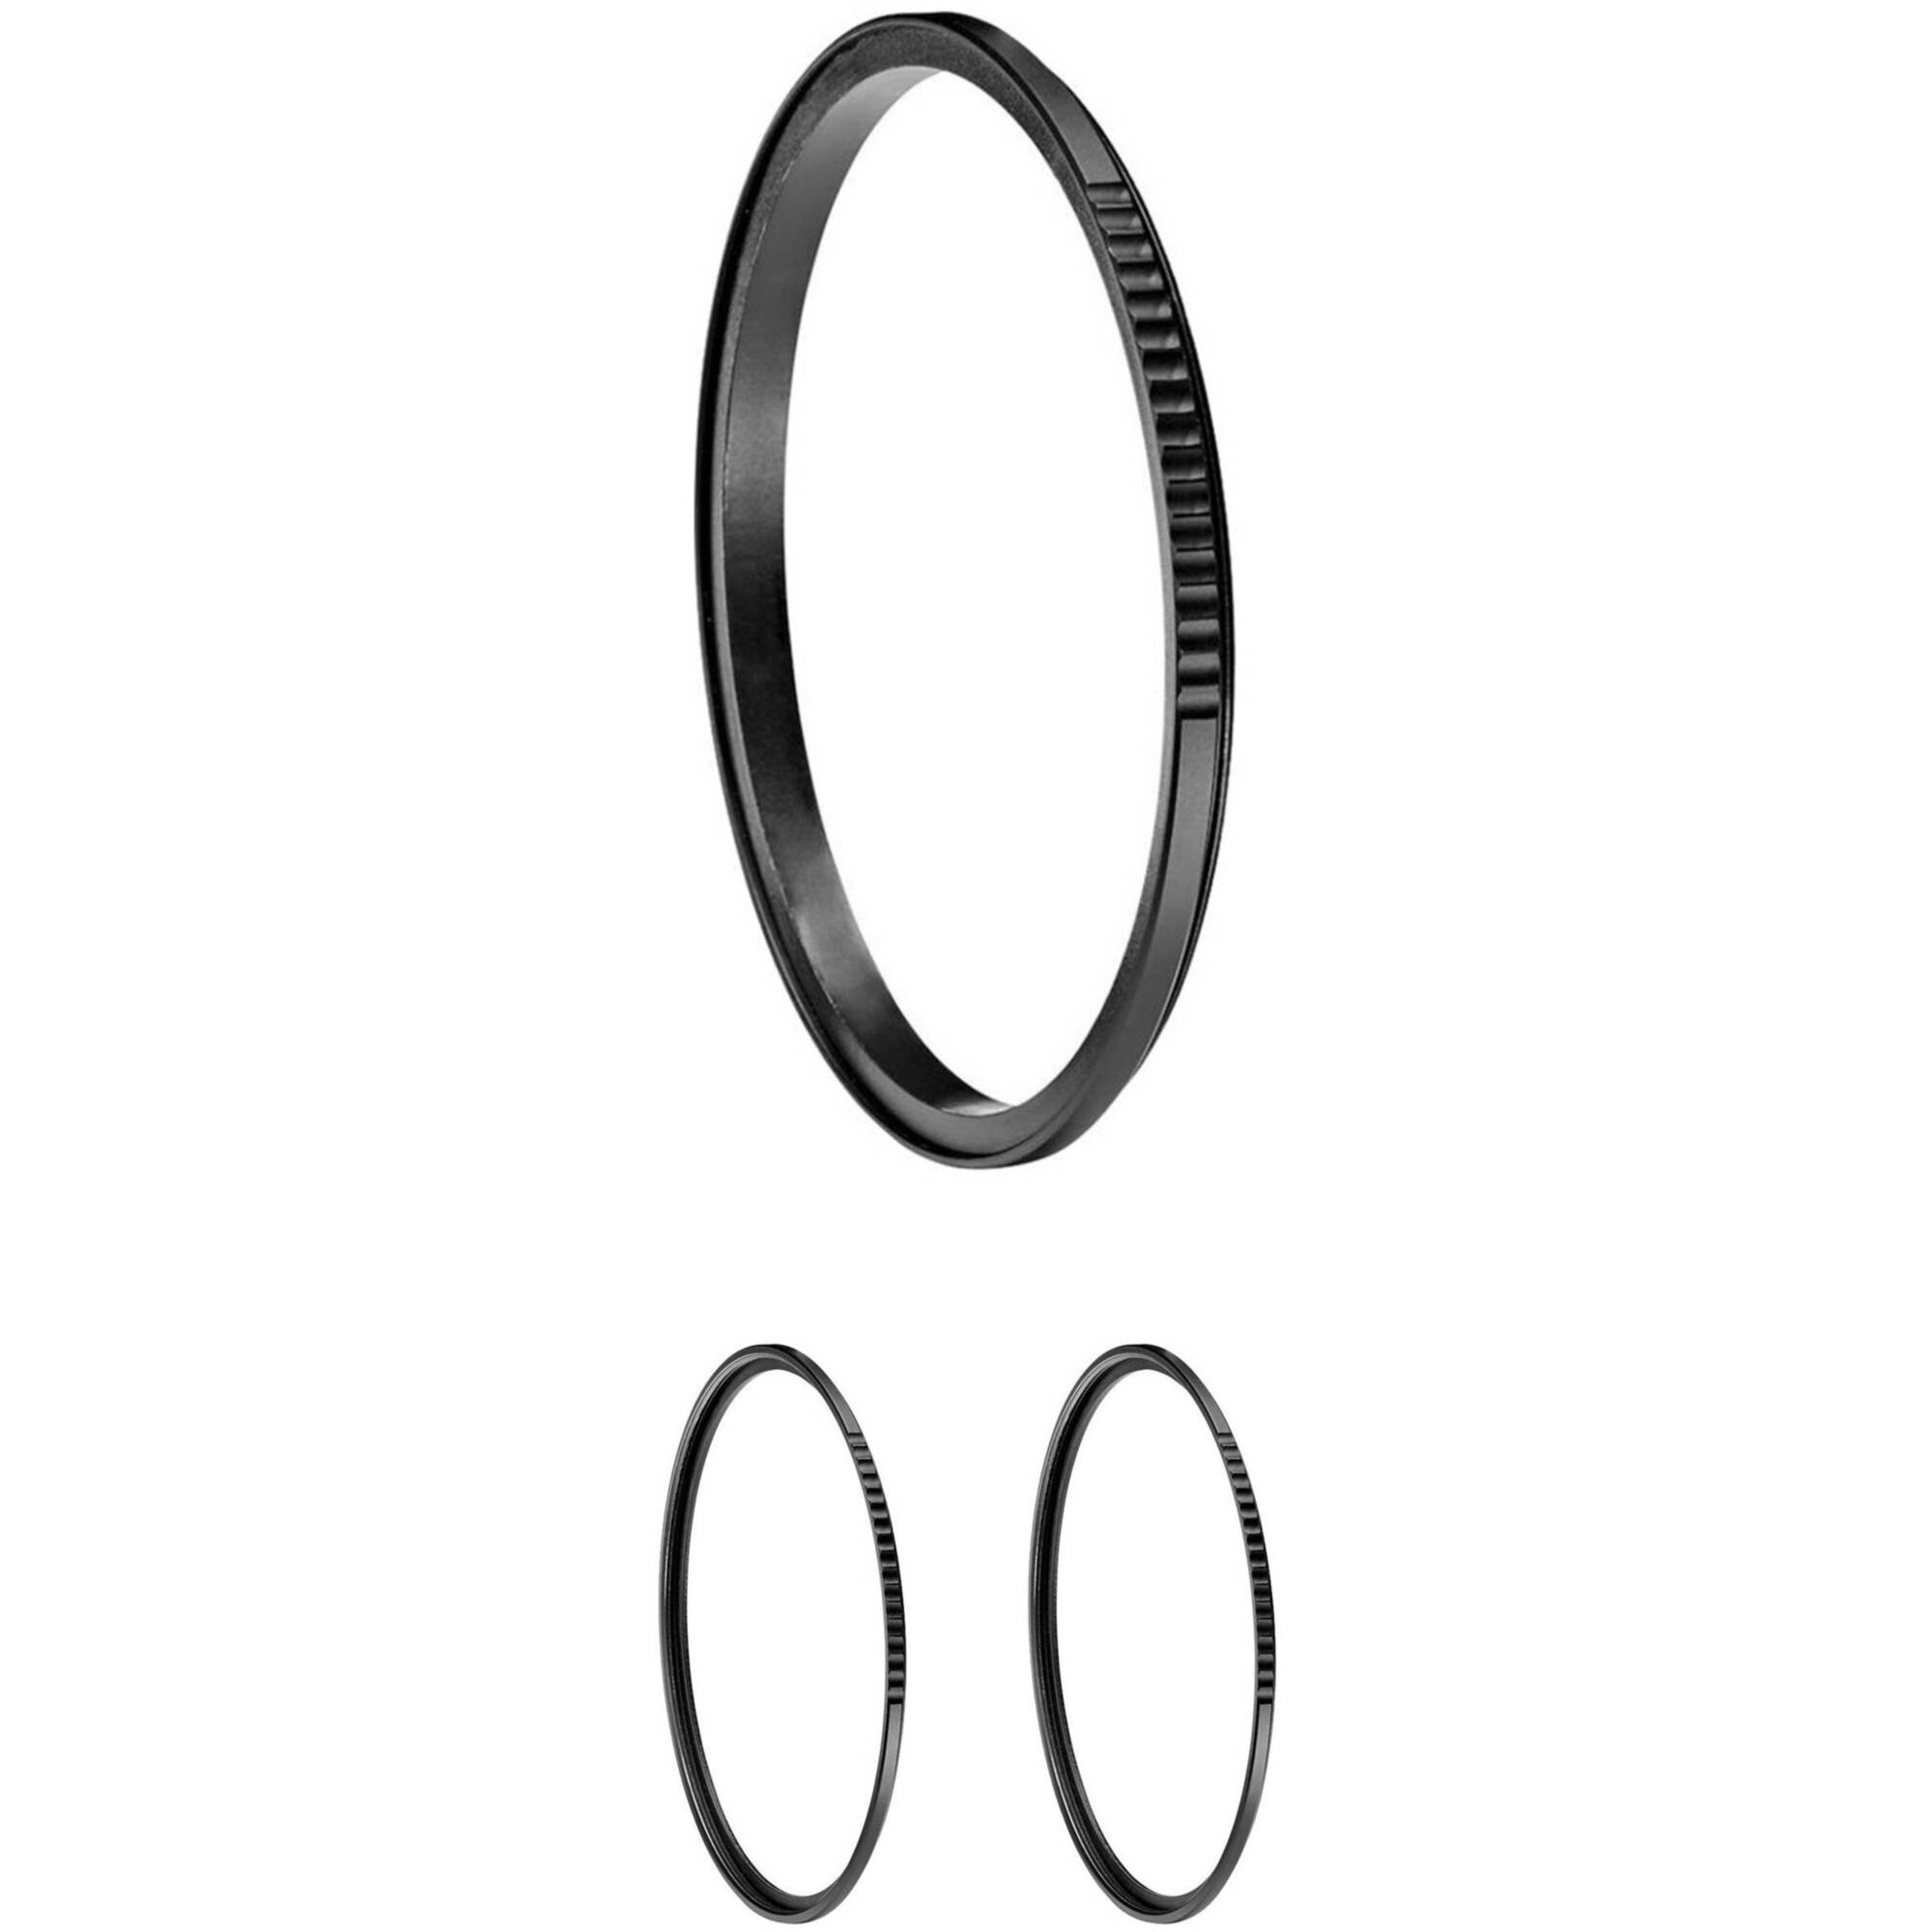 Le Meilleur Xume 72Mm Lens Adapter And Filter Holder Starter Kit B H Photo Ce Mois Ci